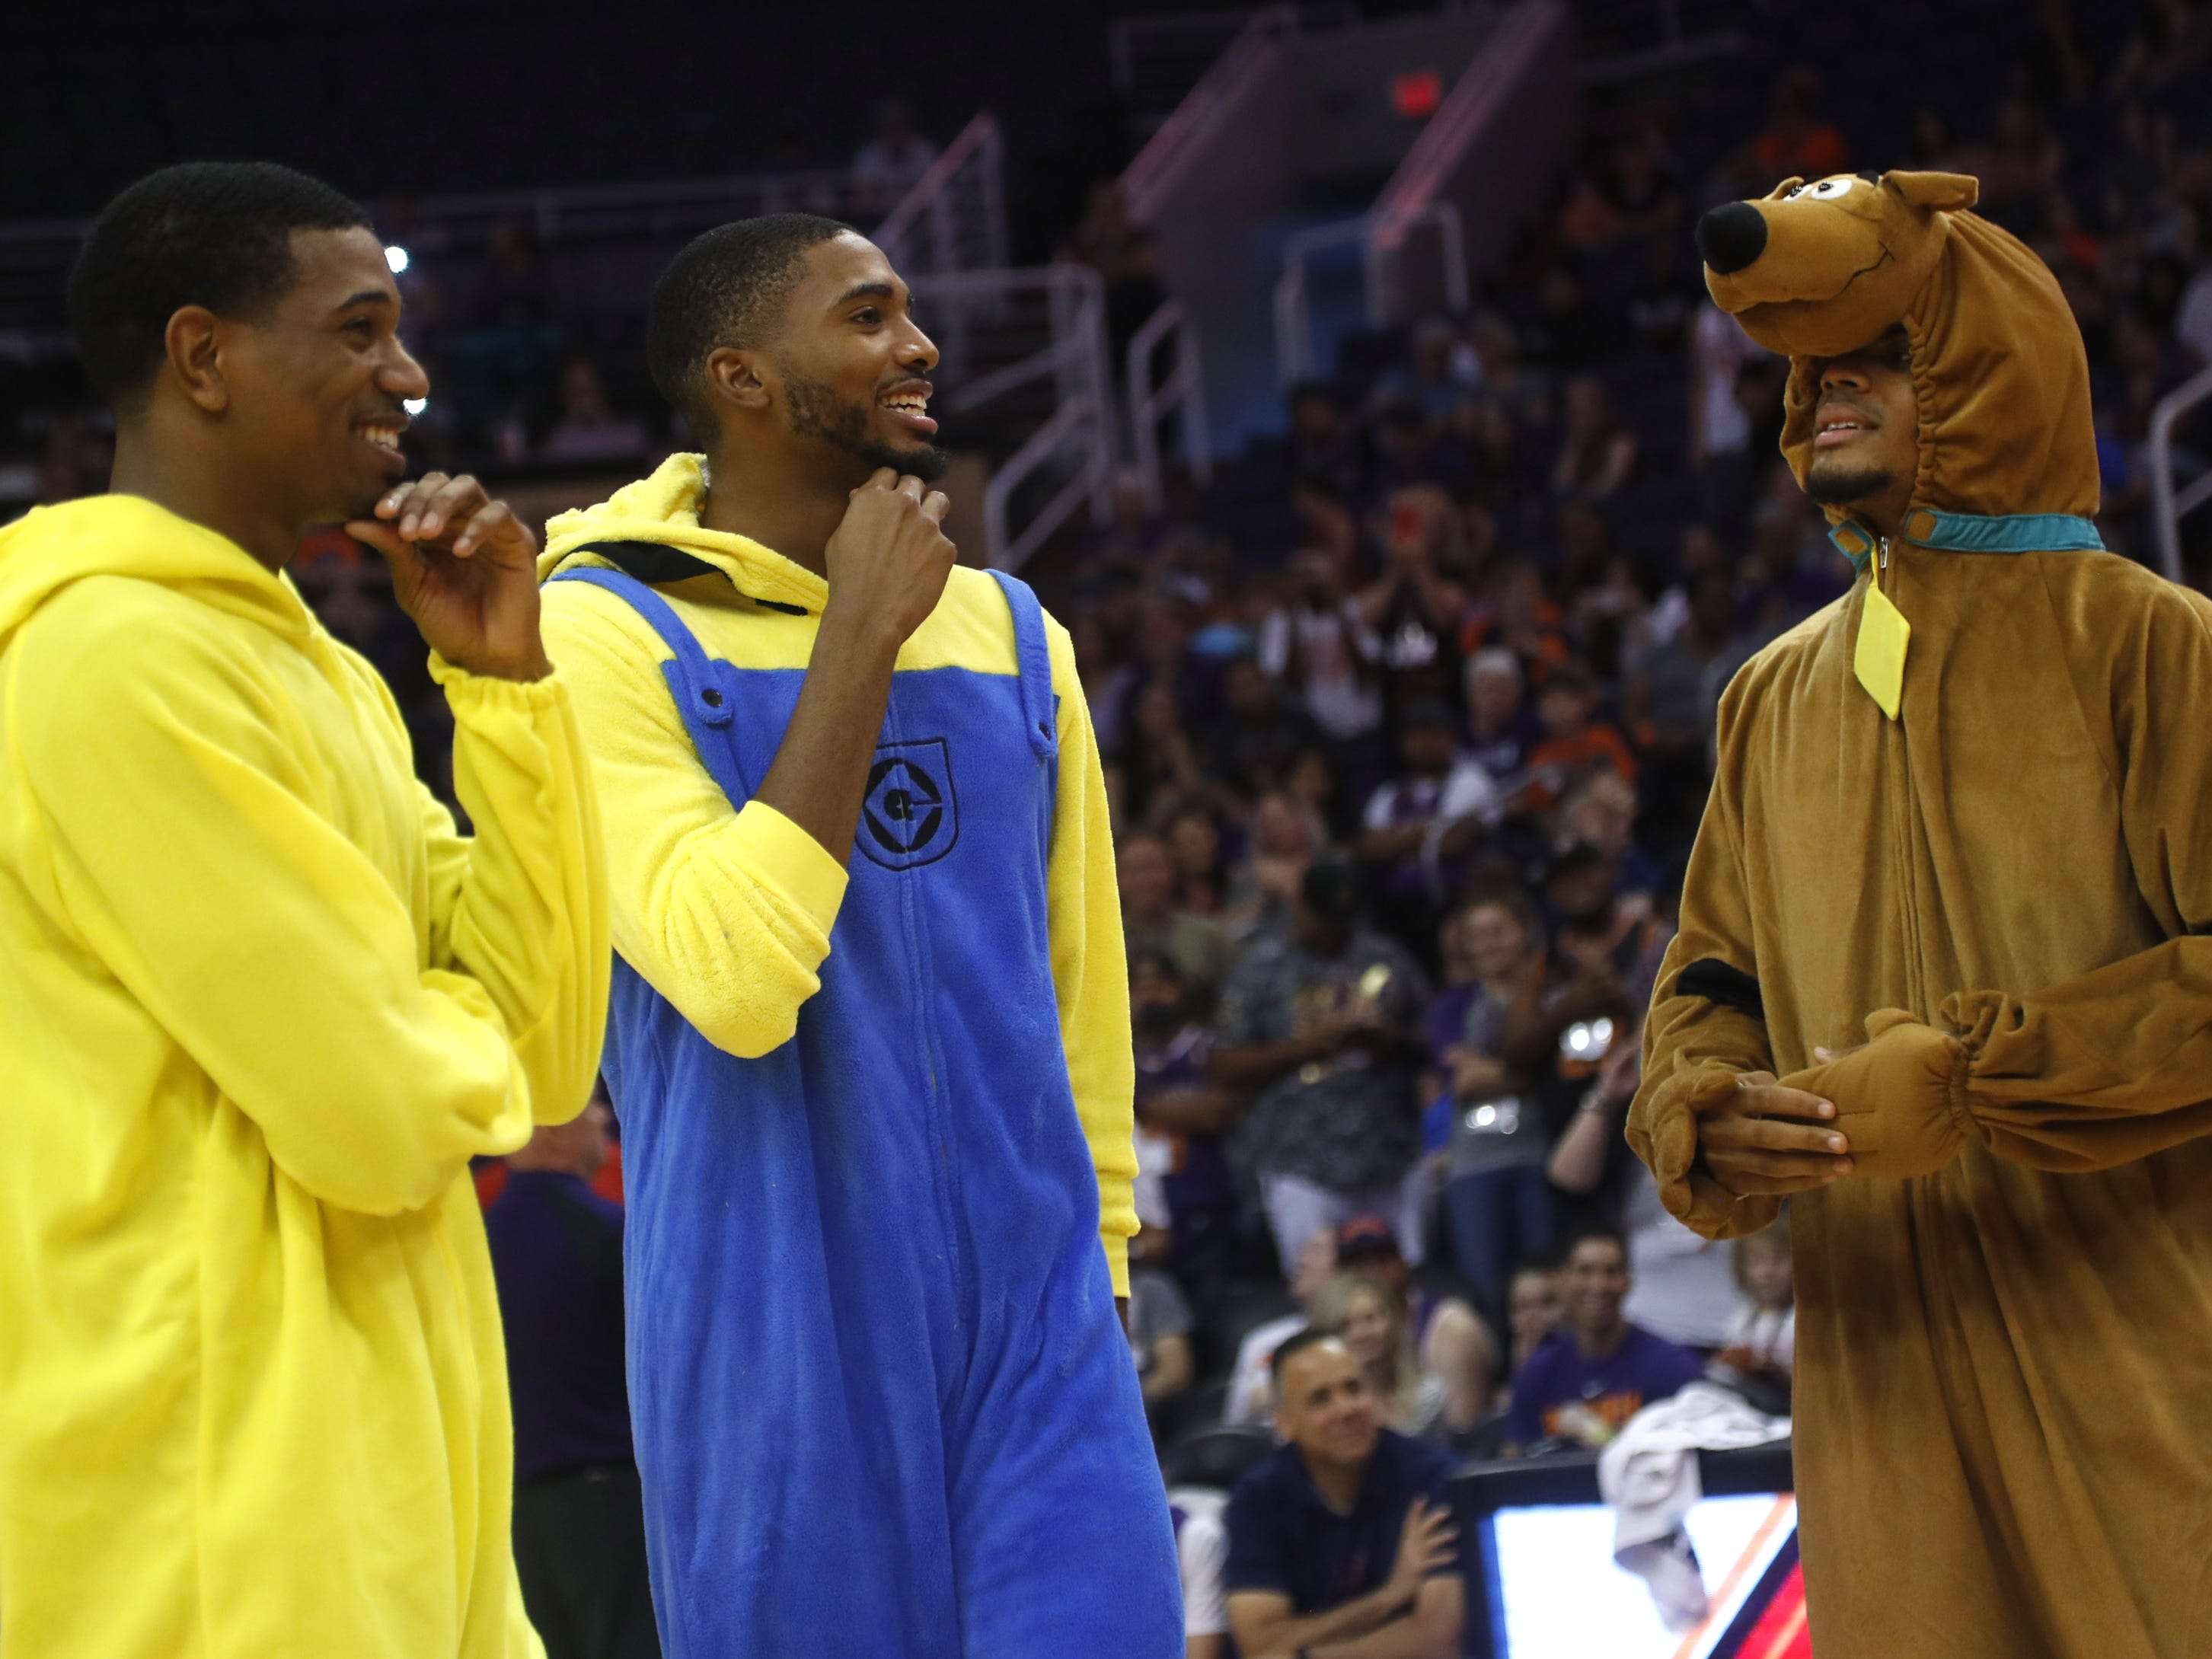 Suns De'Anthony Melton (L-R), Mikal Bridges and Elie Okobo wear costumes and wait for voting after their dance off during an Open Practice at Talking Stick Resort Arena in Phoenix, Ariz. on Sept. 29, 2018.